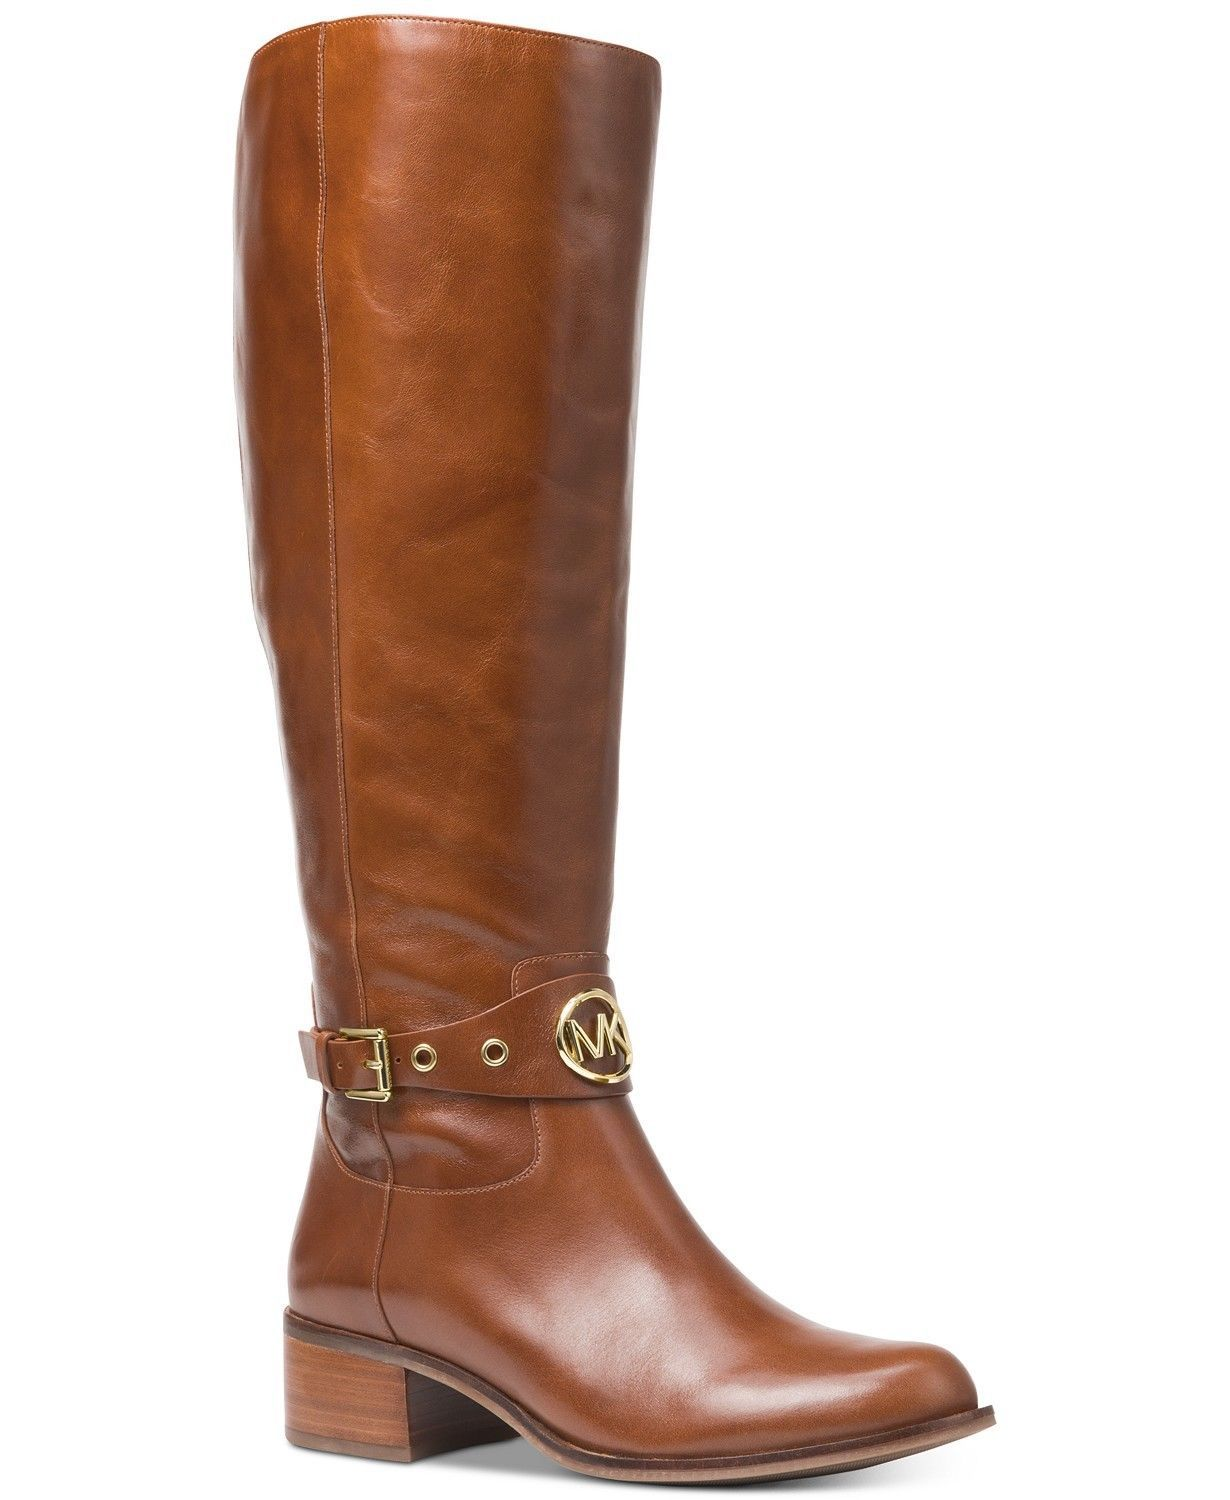 Michael Kors MK Women's Knee High Leather Heather Riding Boots Dark Caramel